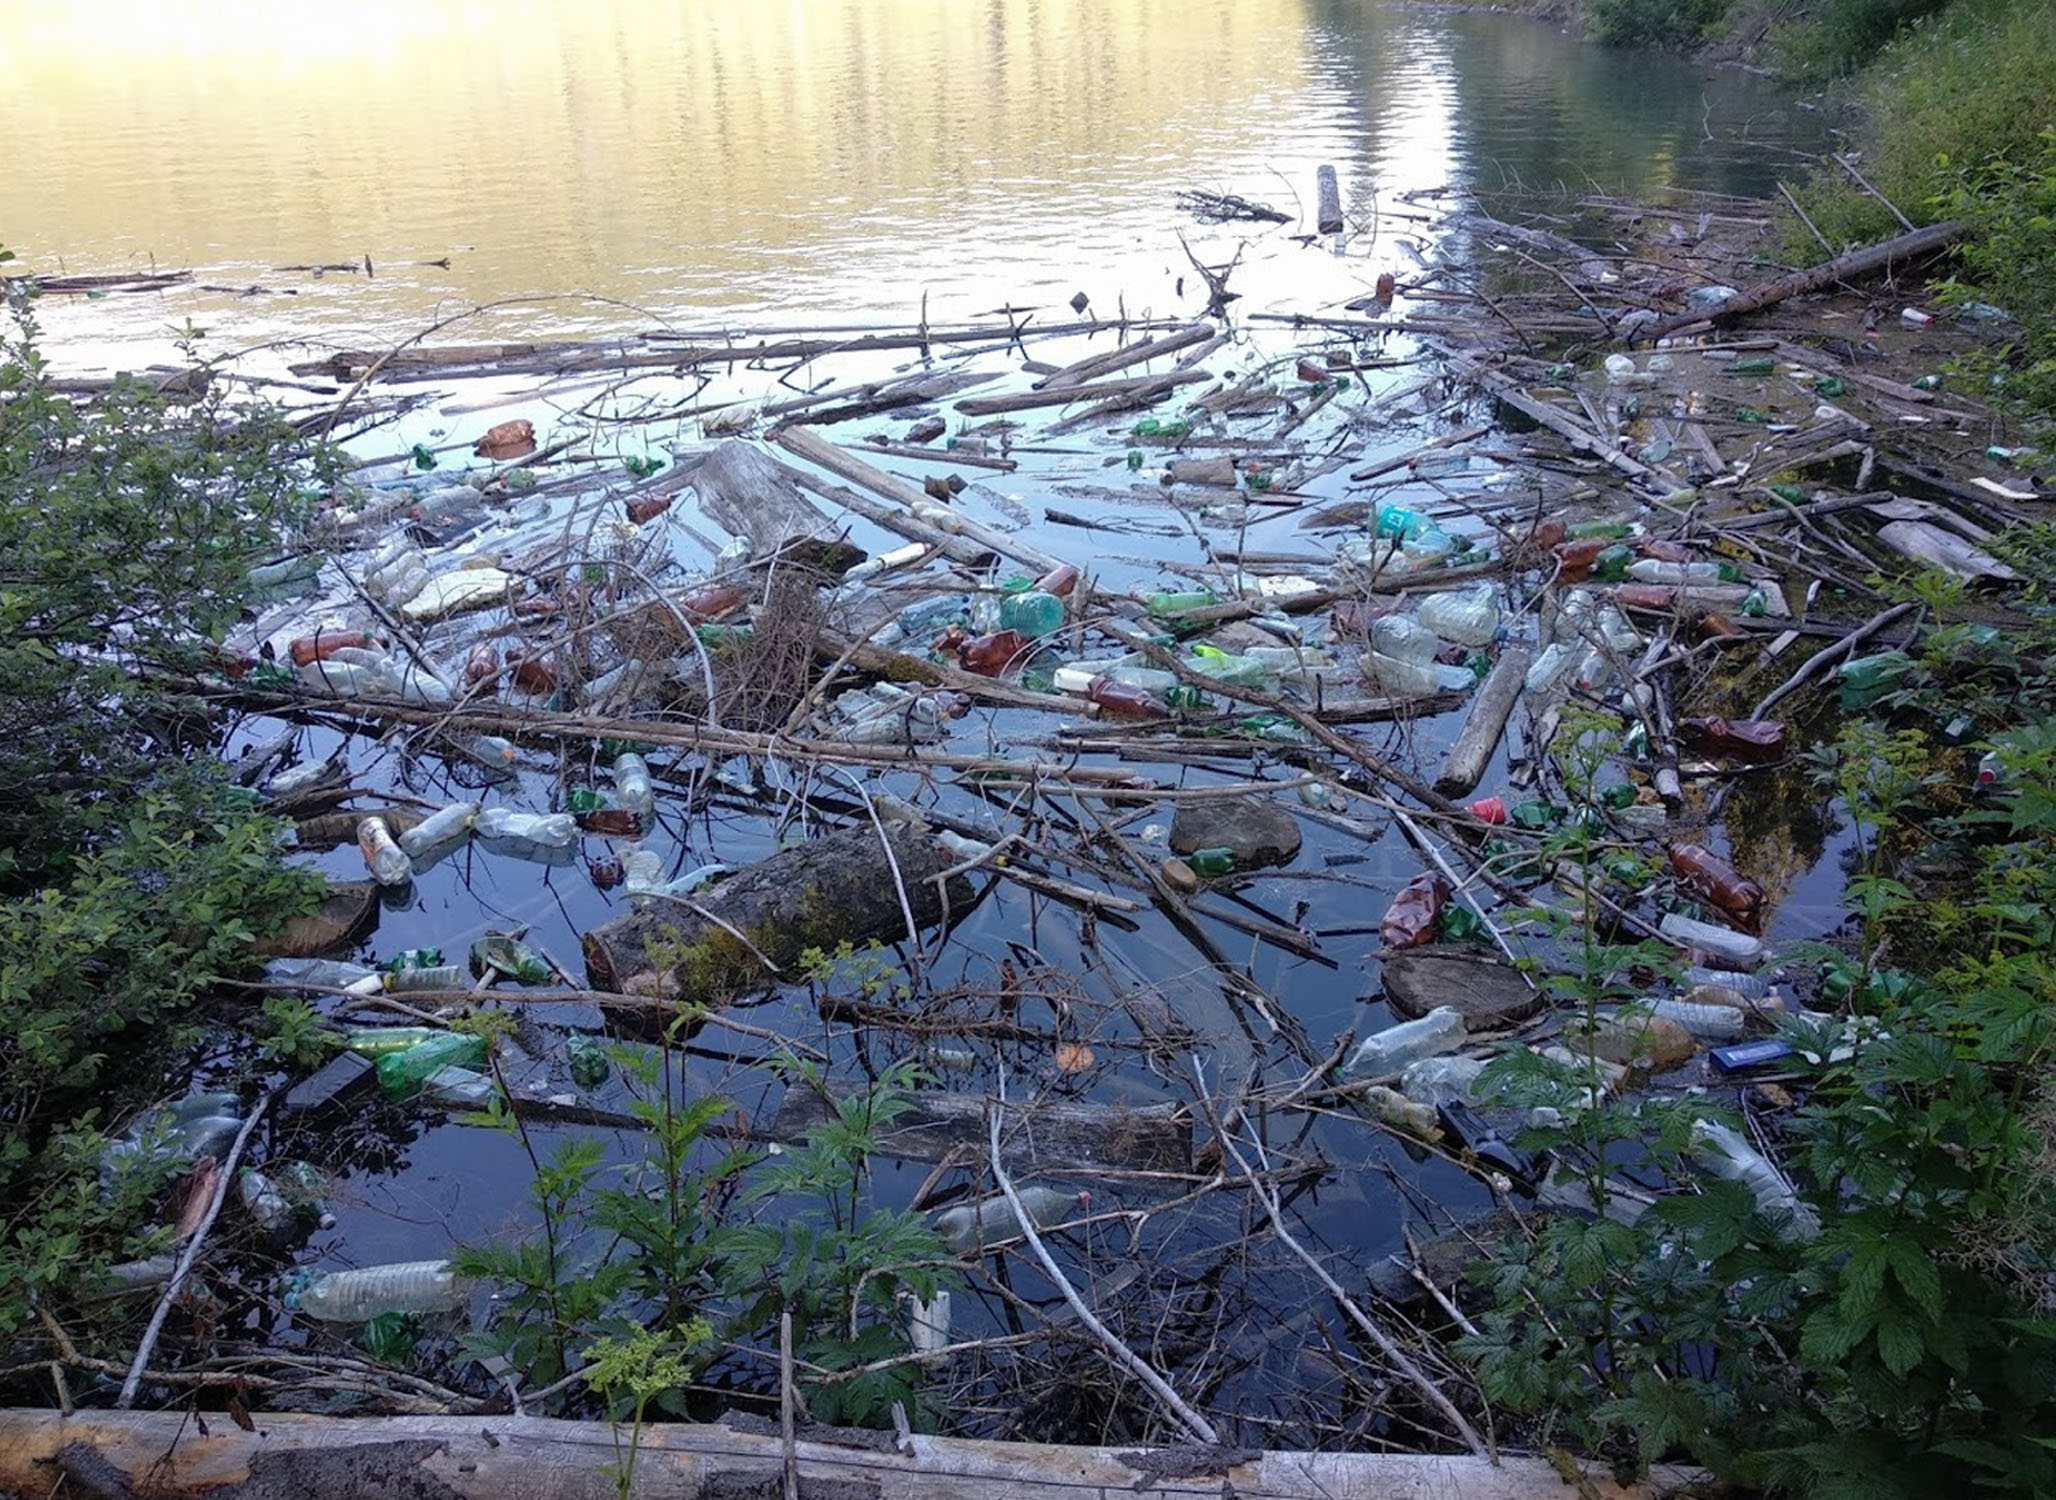 Down by the river - all trash